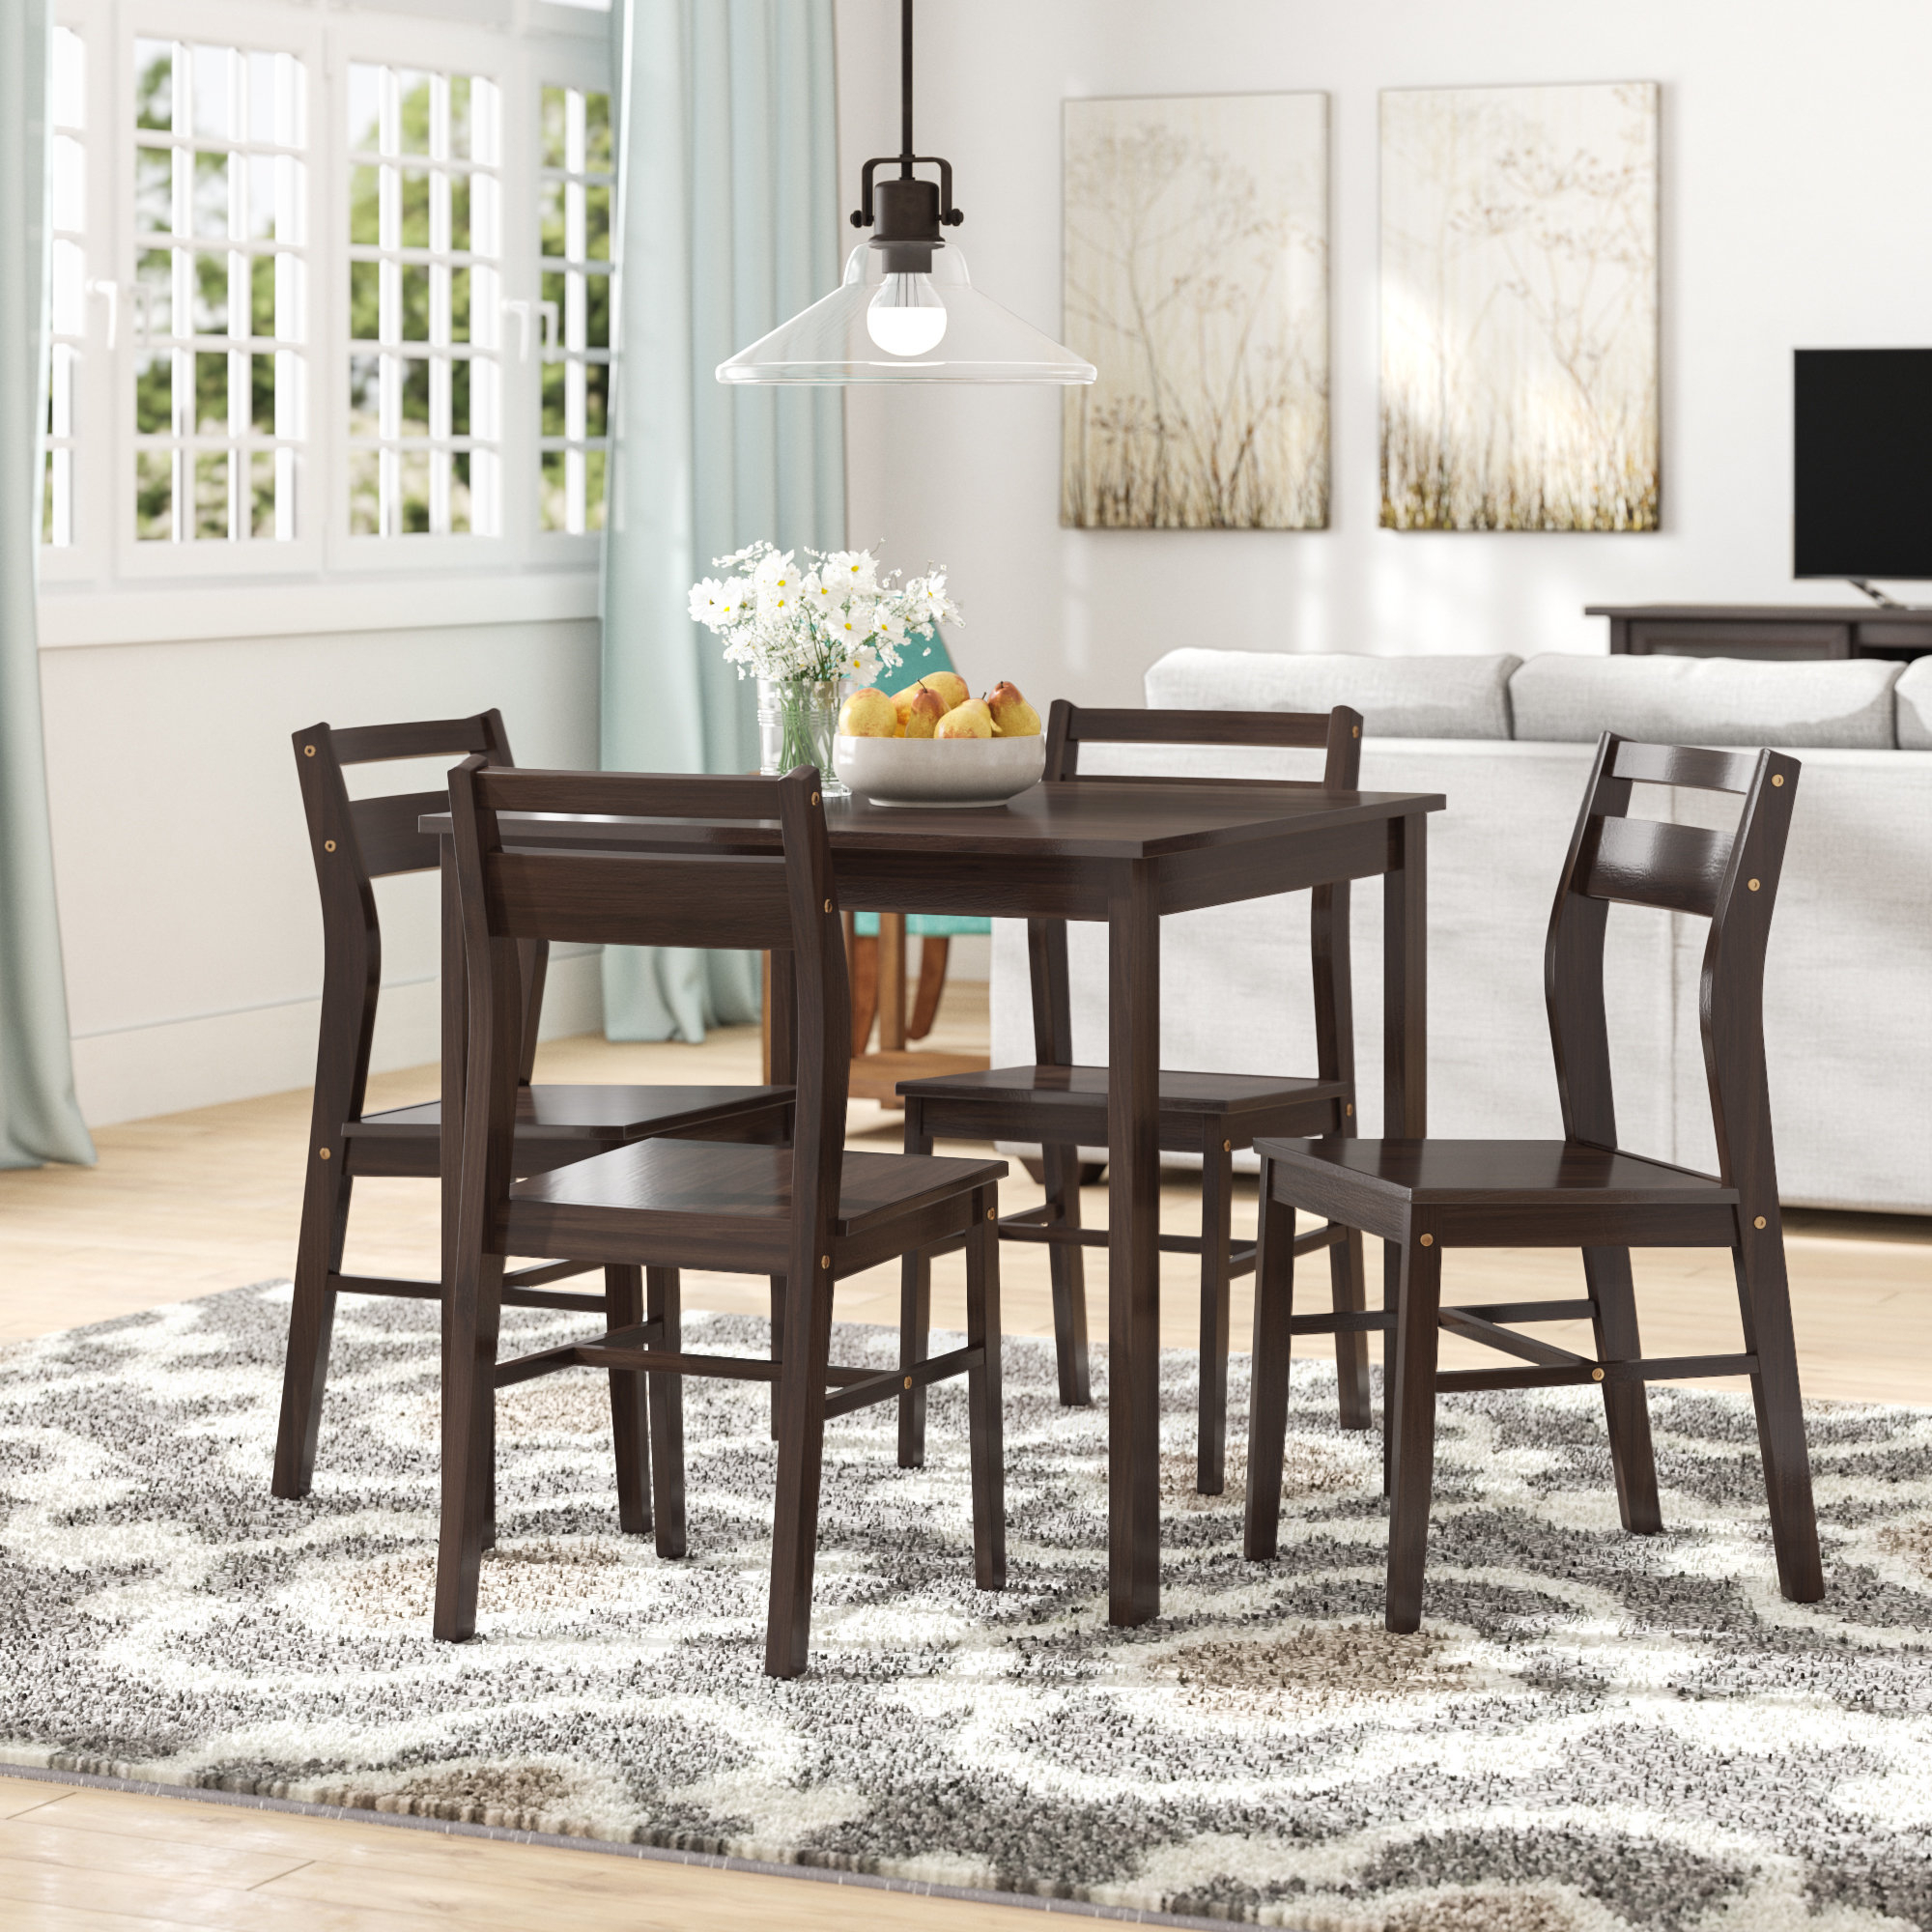 Hersom 5 Piece Dining Set Regarding Recent Bryson 5 Piece Dining Sets (Image 16 of 20)